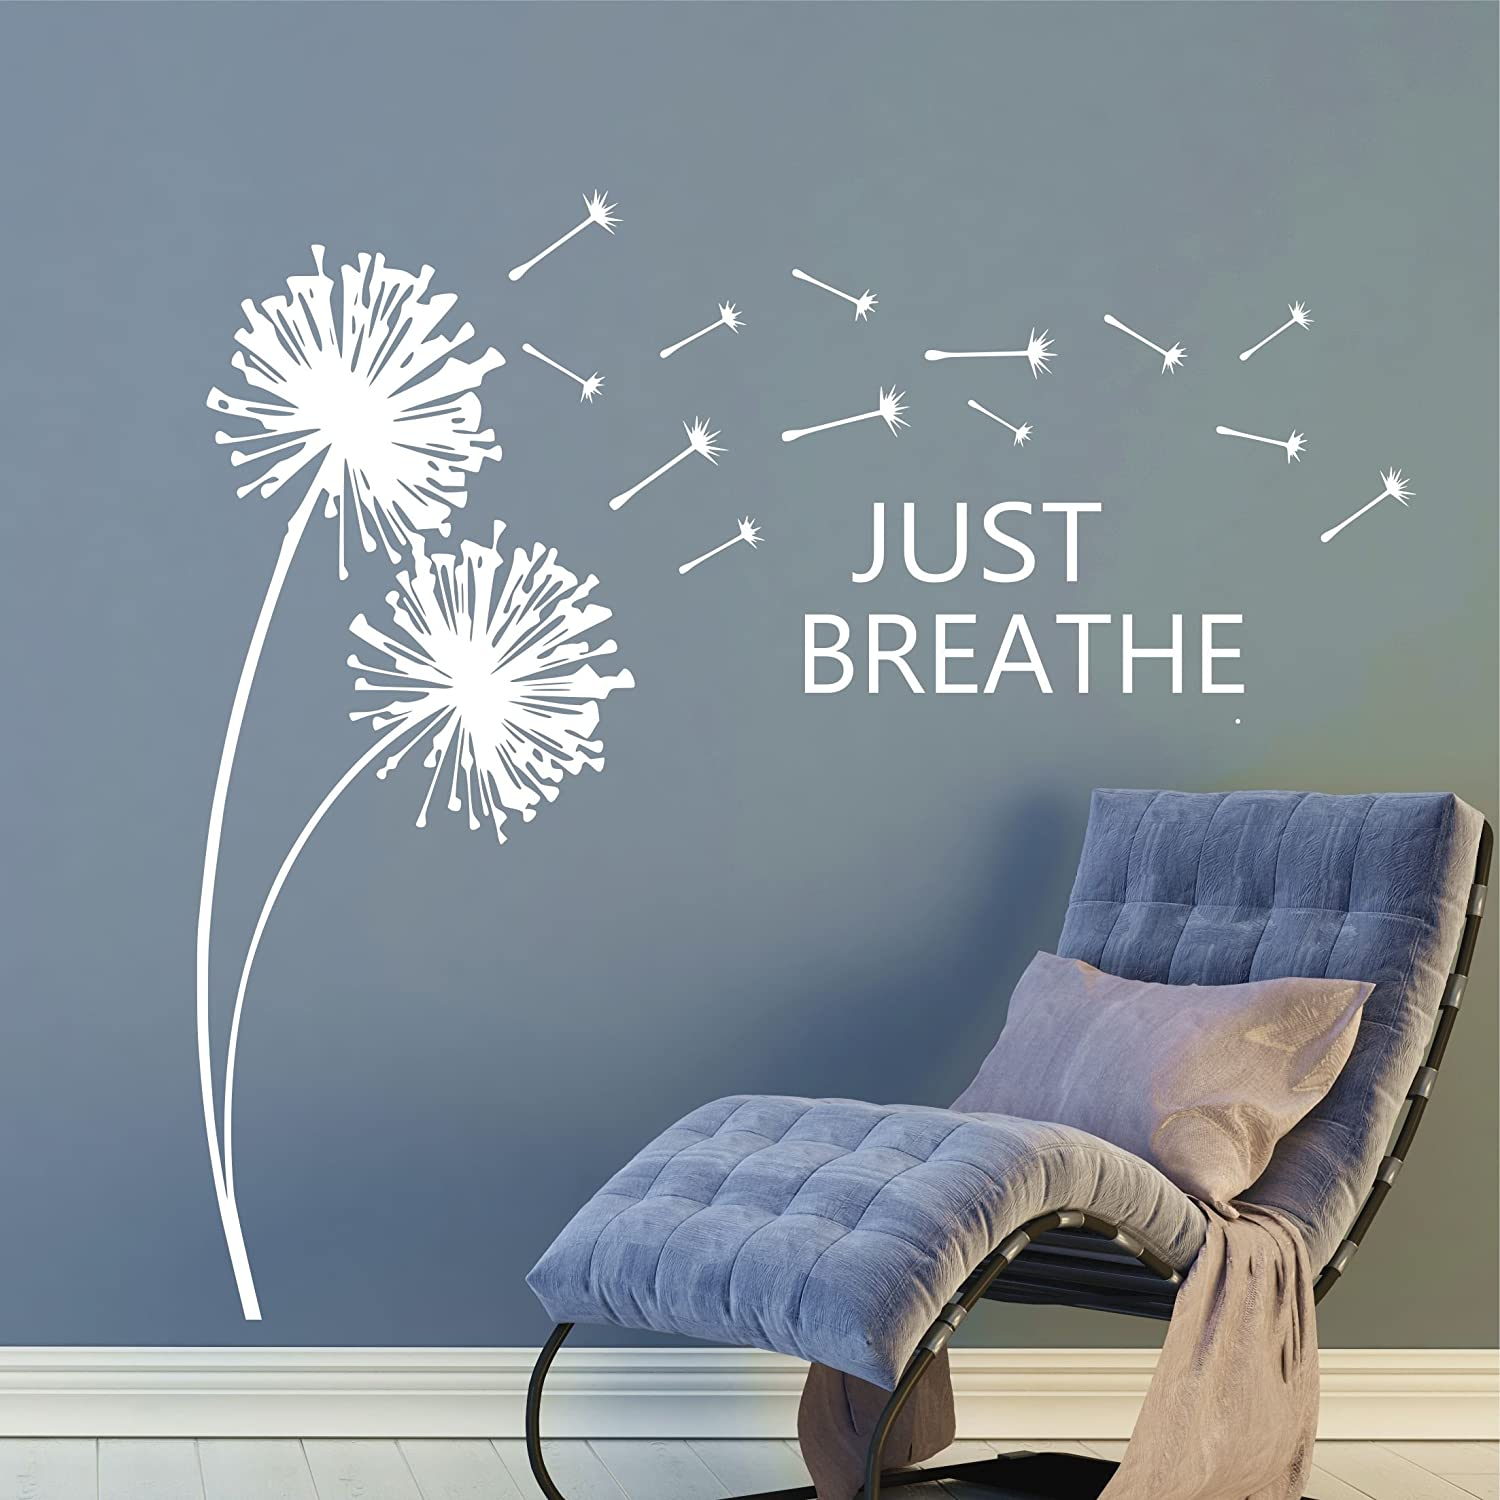 Amazon just breathe dandelions blowing in the breeze amazon just breathe dandelions blowing in the breeze inspirational wall quote decals dandelion wall decals dandelion wall stickers plus free hello amipublicfo Gallery